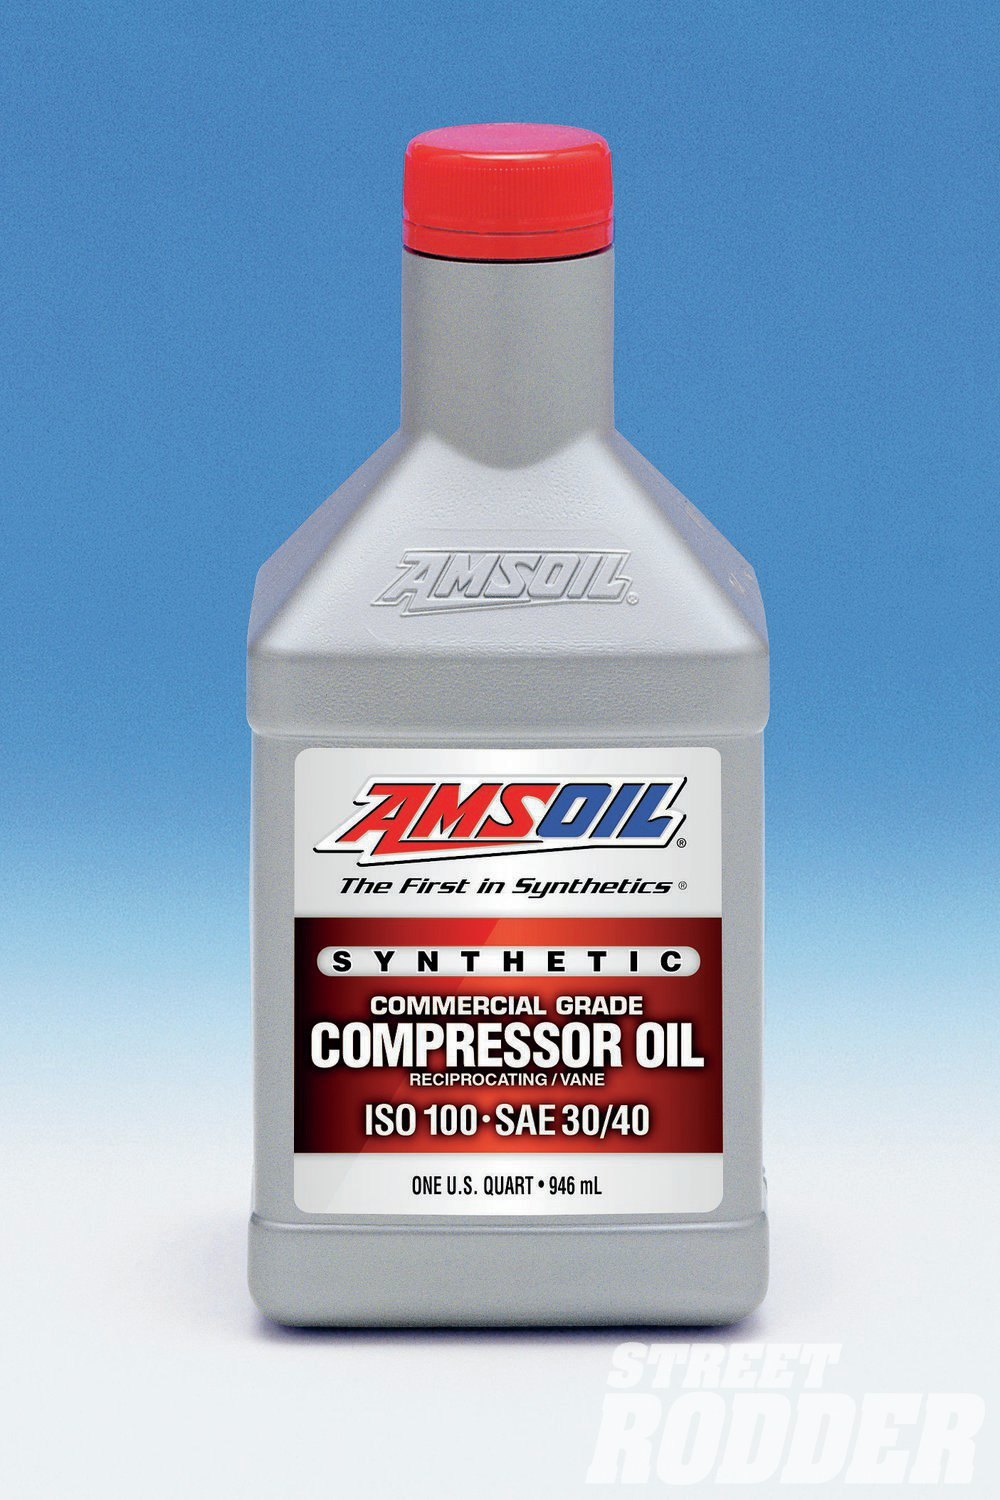 1. The extreme demands of sandblasting will destroy a poorly serviced air compressor. To avoid problems I refilled with AMSOIL Inc., a commercial grade synthetic oil specified for air compressors. Don't overfill, as it causes oil contamination in the air supply.